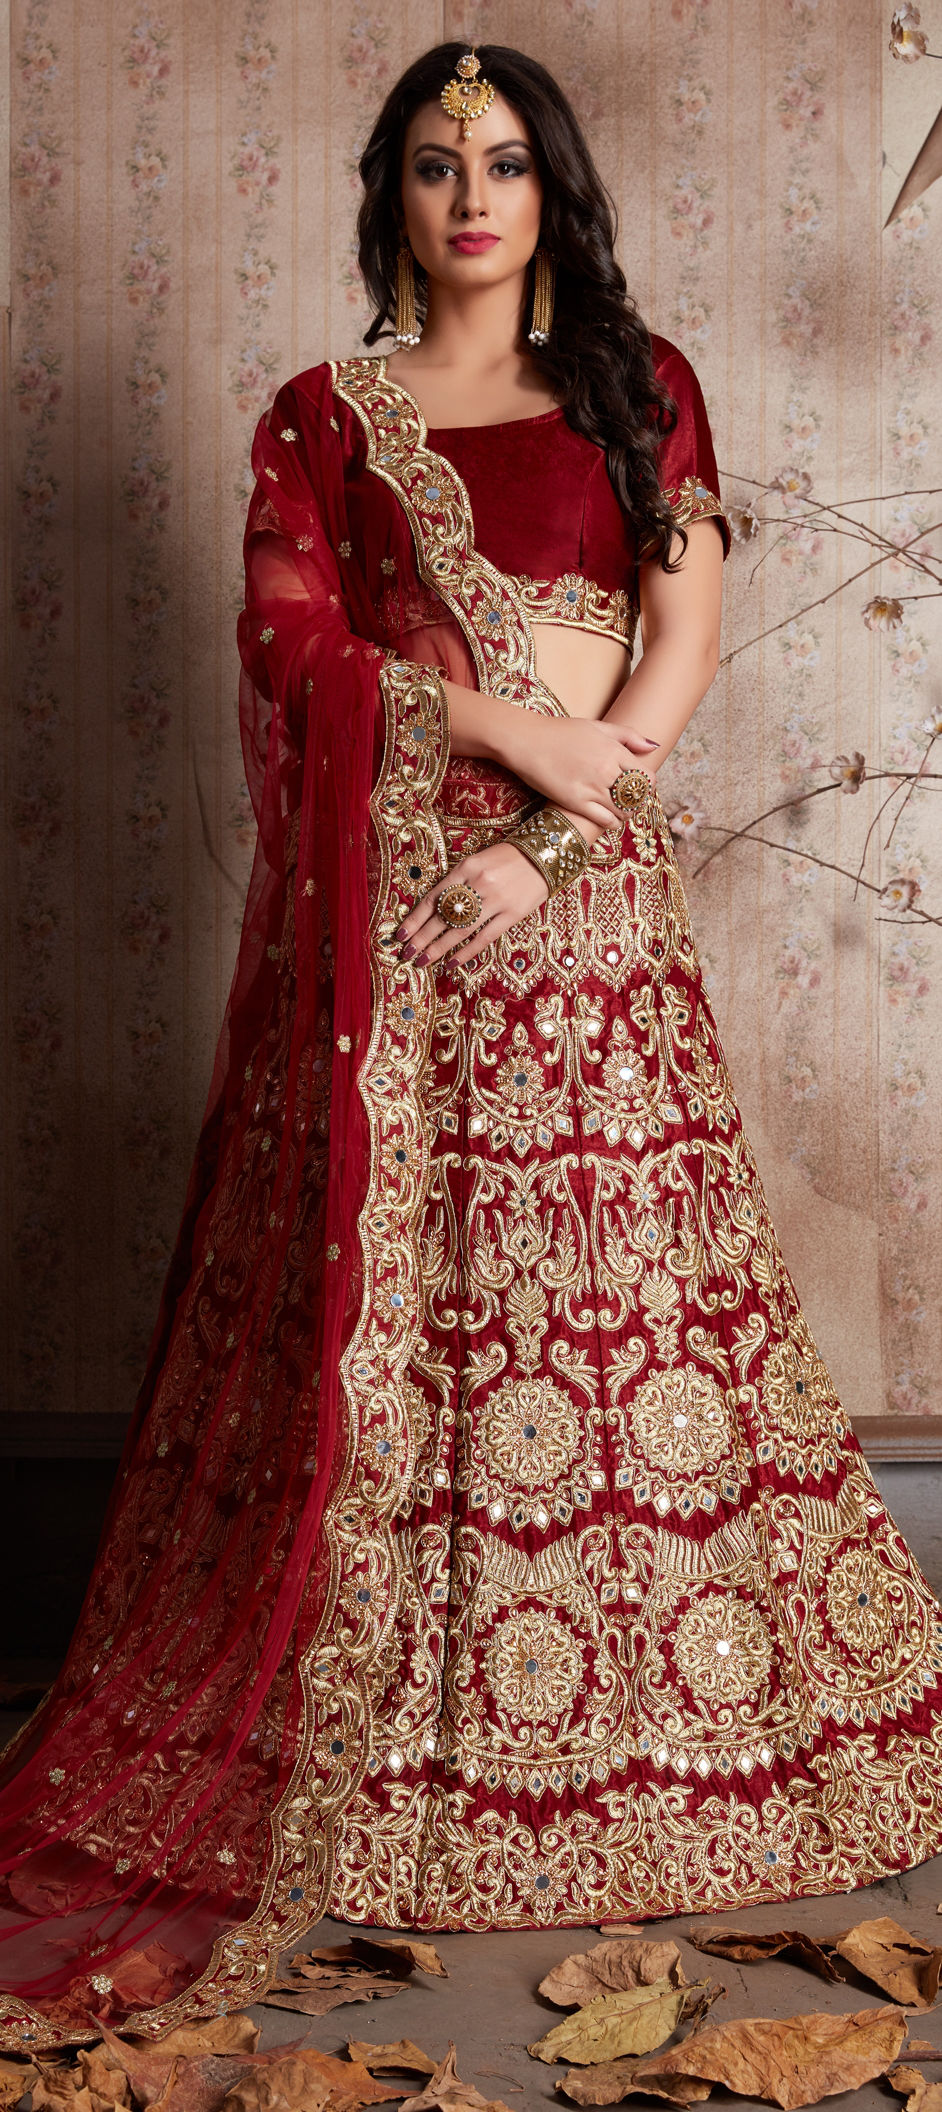 Semi Velvet Wedding Lehenga in Red and Maroon with Zari work